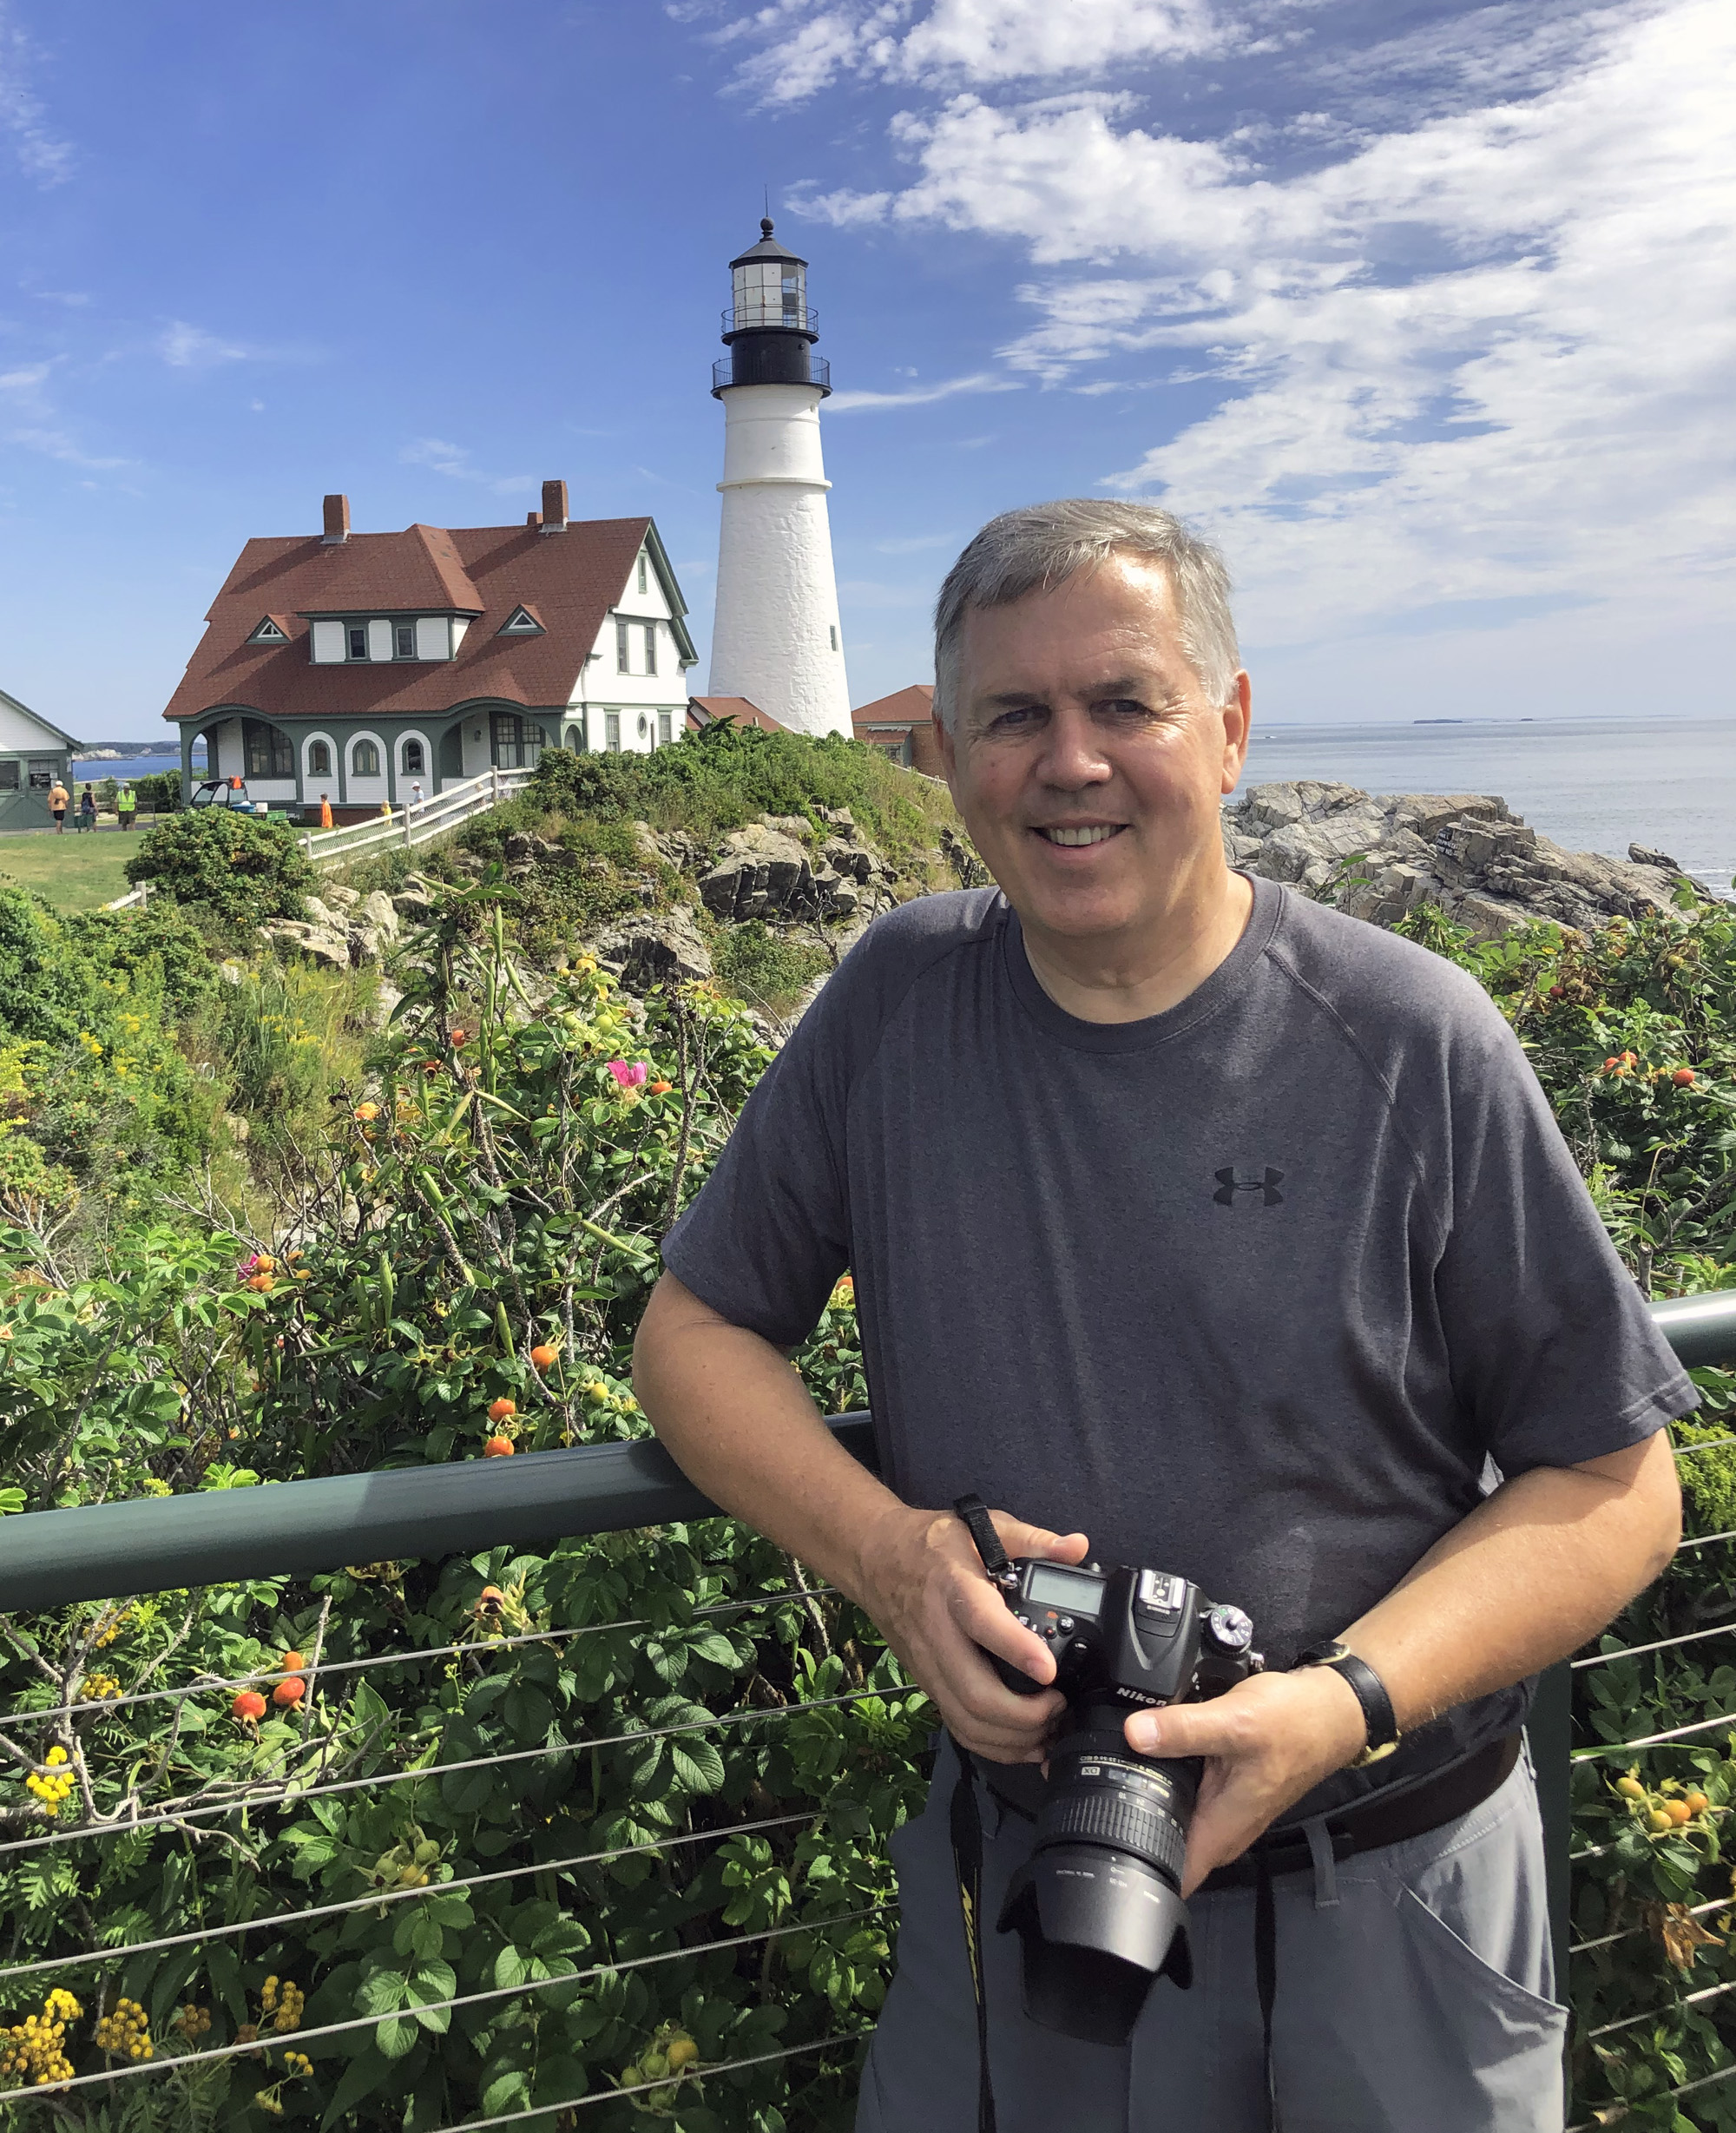 Kenneth Mays with his camera in Maine.